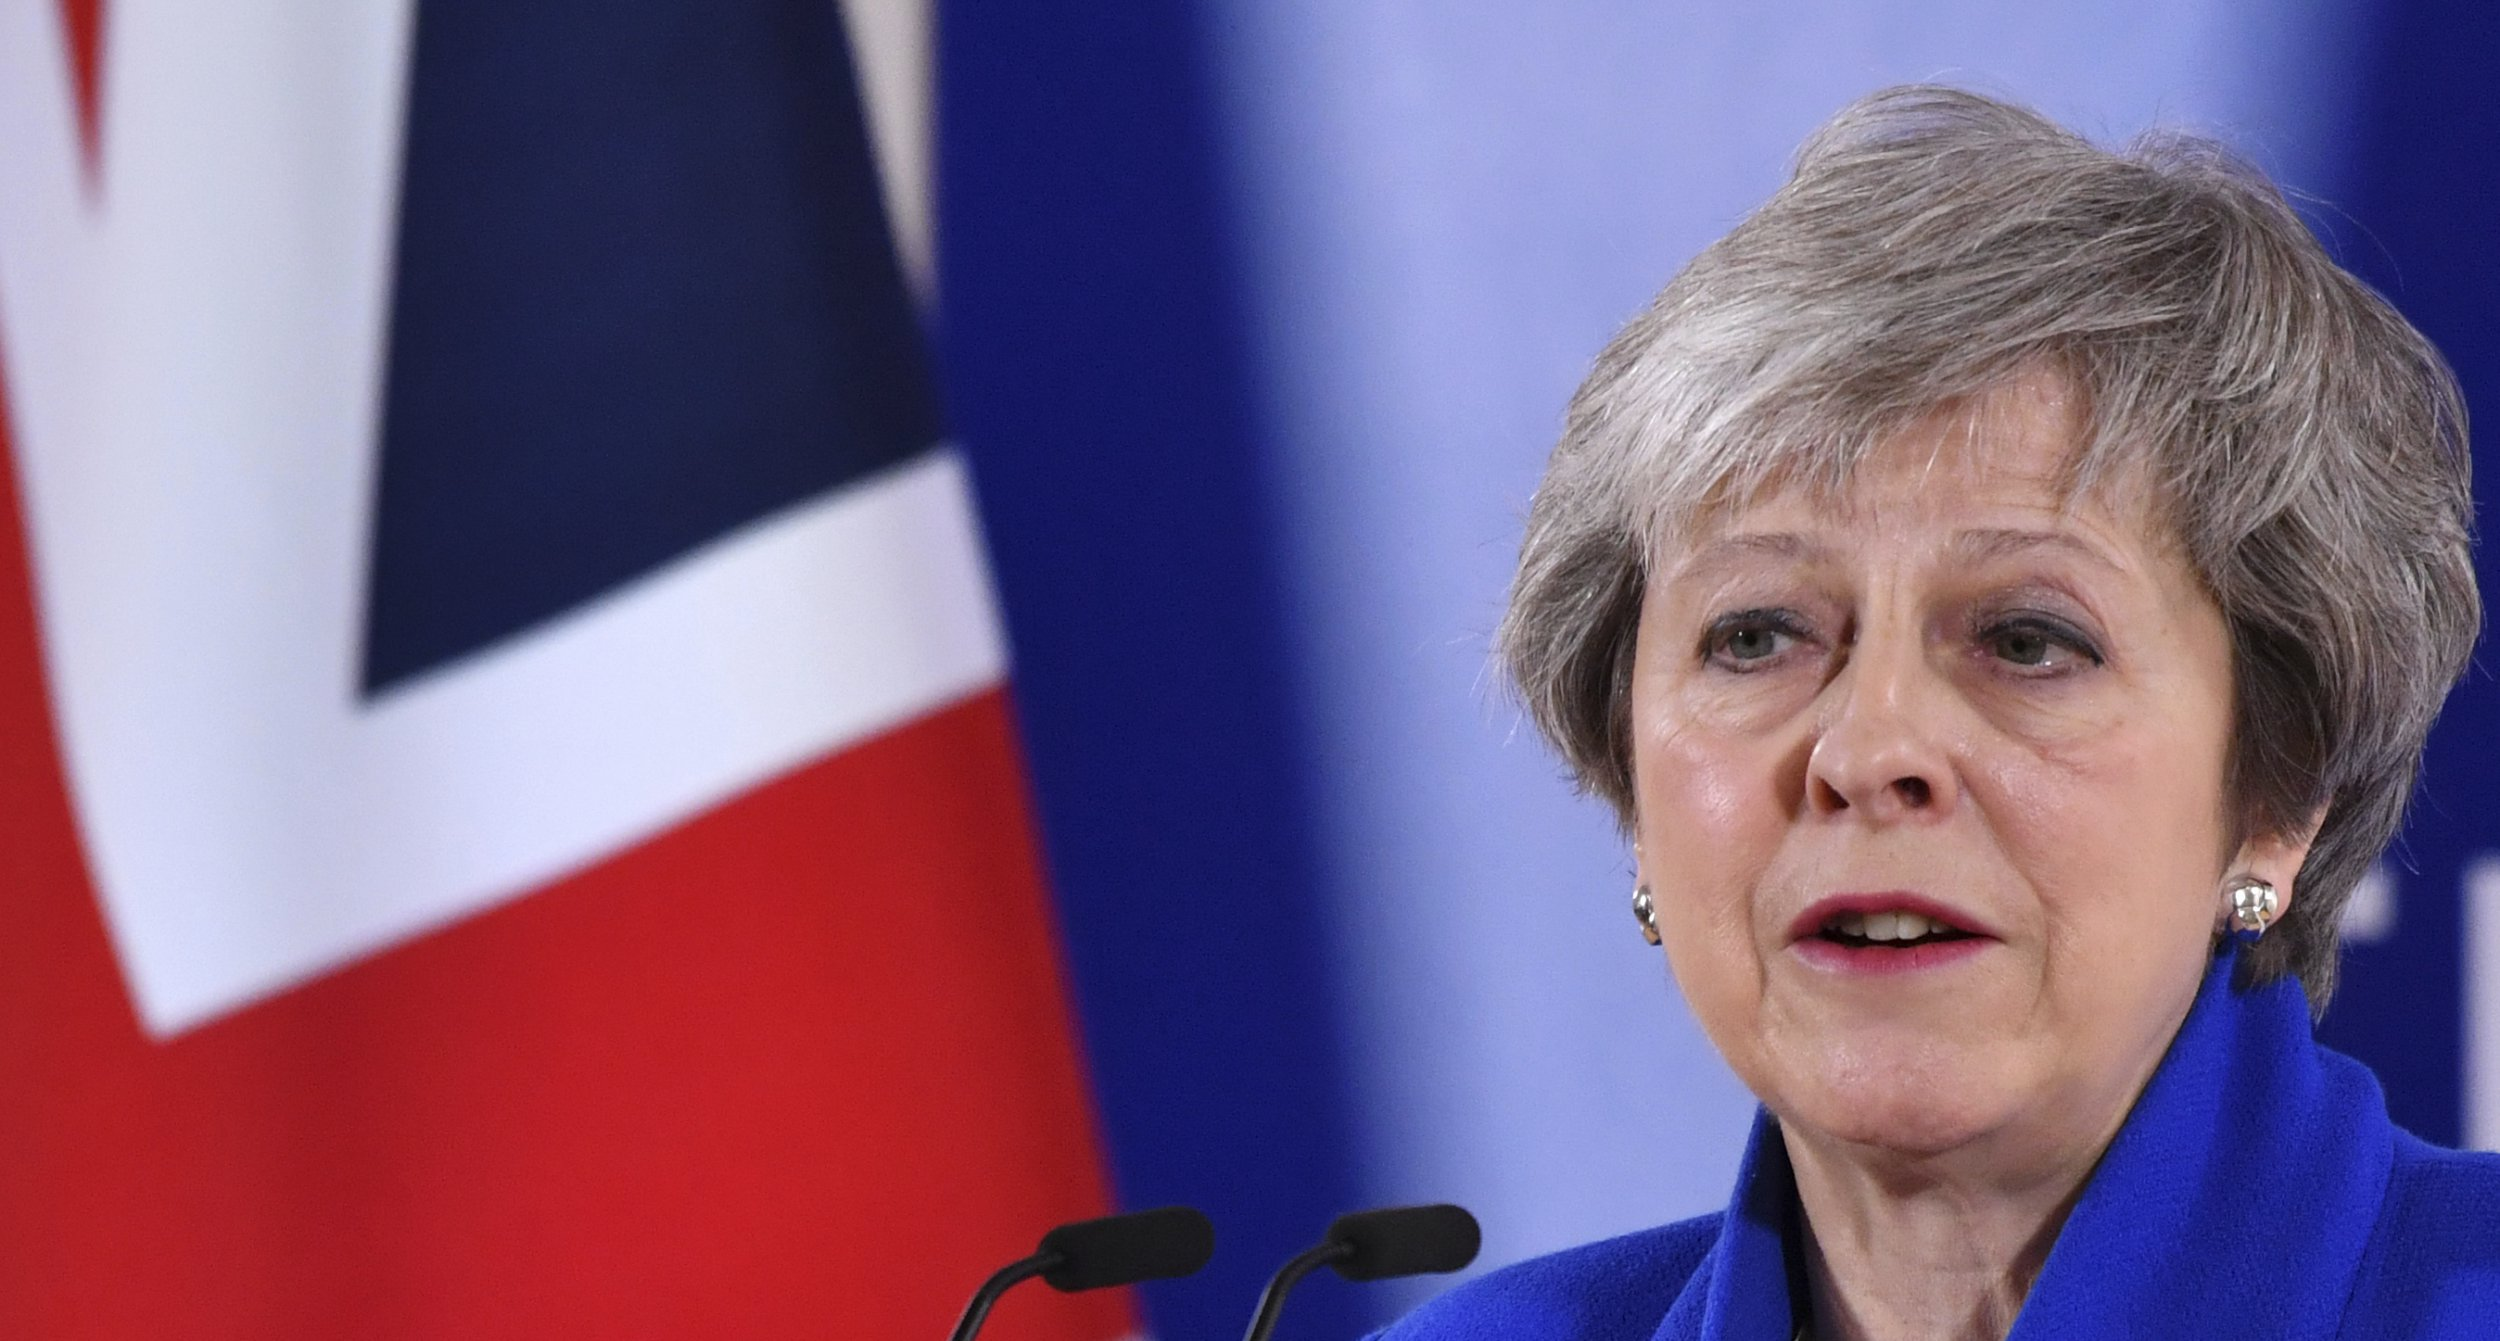 'Back my Brexit or face crashing out of EU', Theresa May to tell MPs today